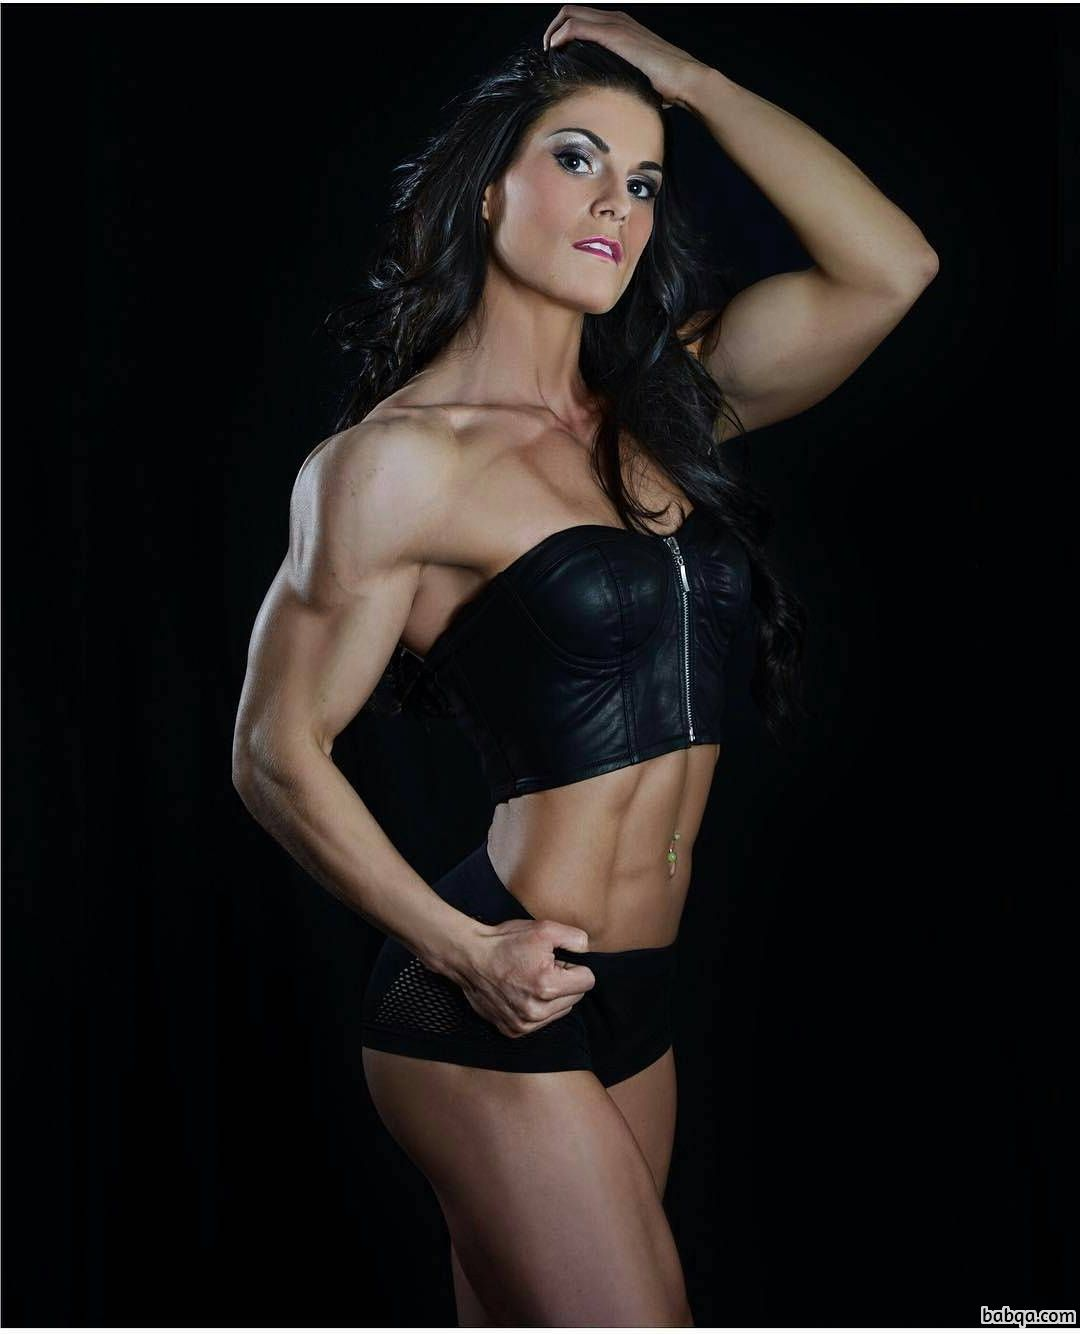 spicy woman with muscular body and muscle legs post from g+